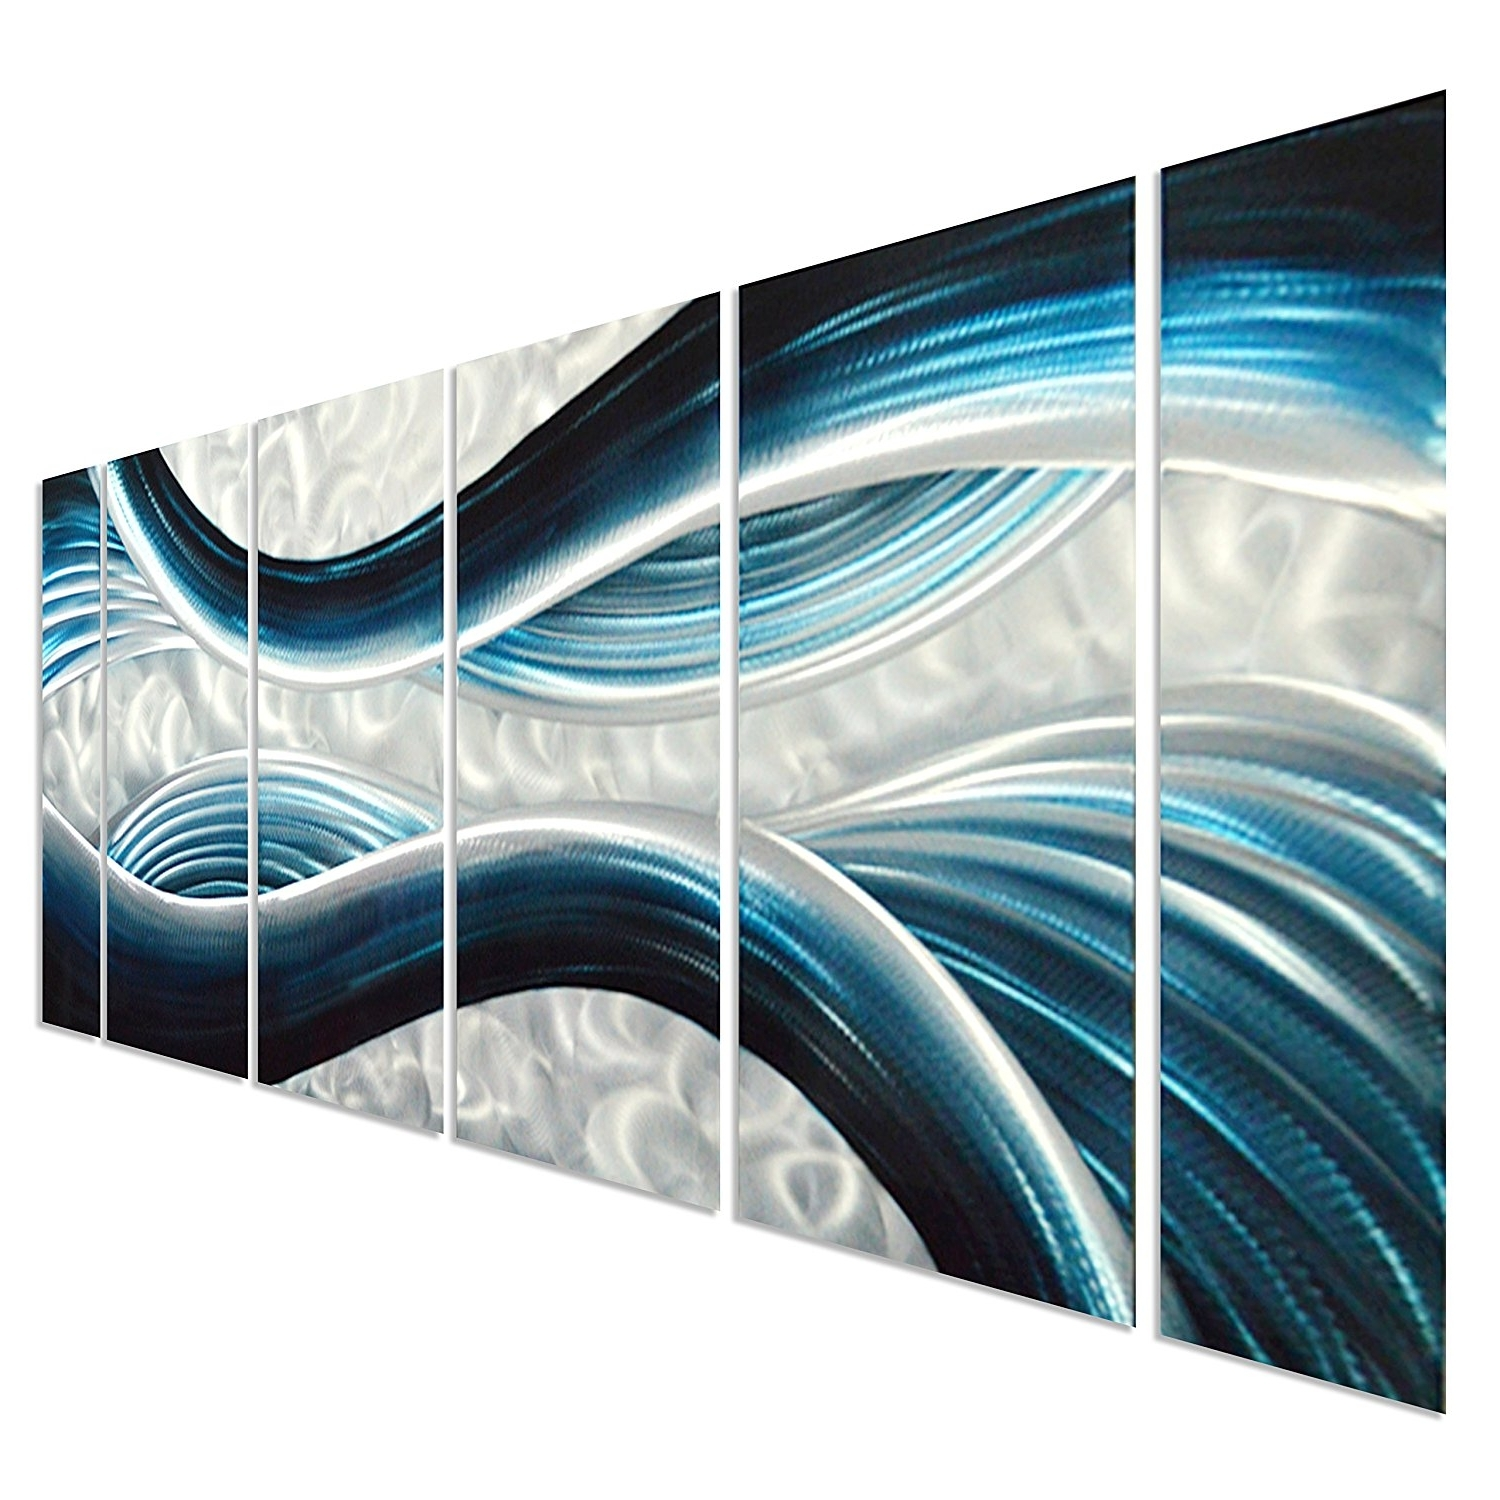 Abstract Metal Wall Art Australia Throughout Most Recent Metal Wall Art Panels Australia A Decal Amazon Blue Desire Large (View 6 of 15)